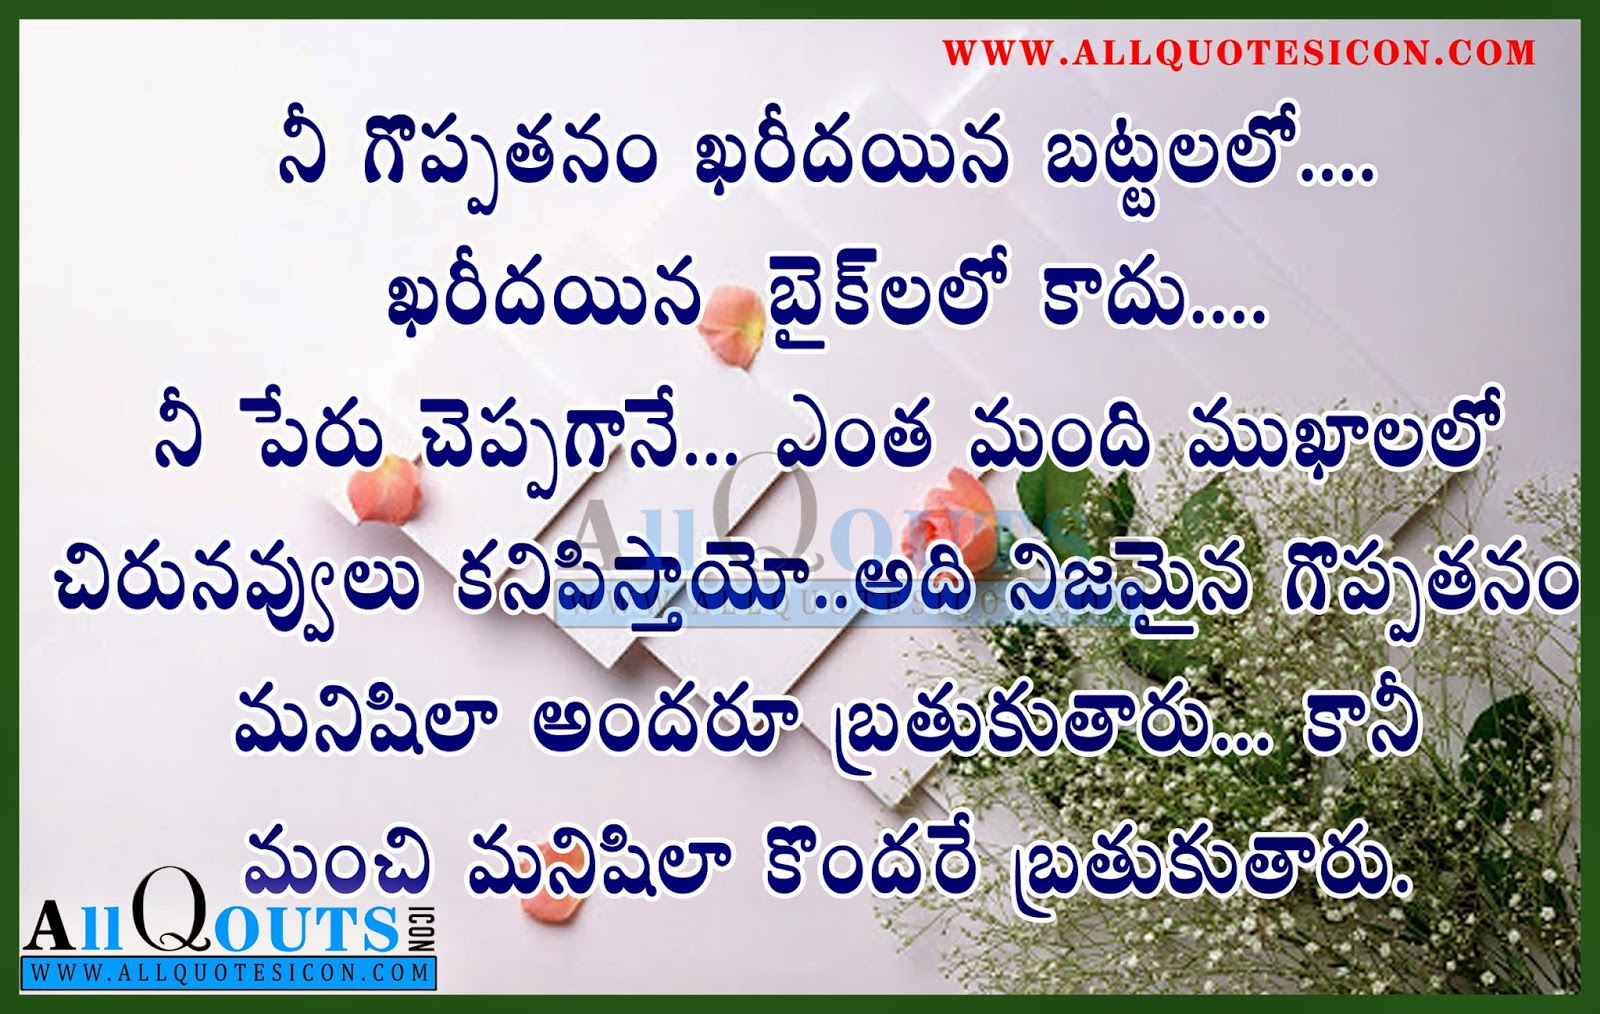 Swami Vivekananda Quotes Wallpapers In Kannada Telugu Inspiration Quotes And Sayings In Telugu Www